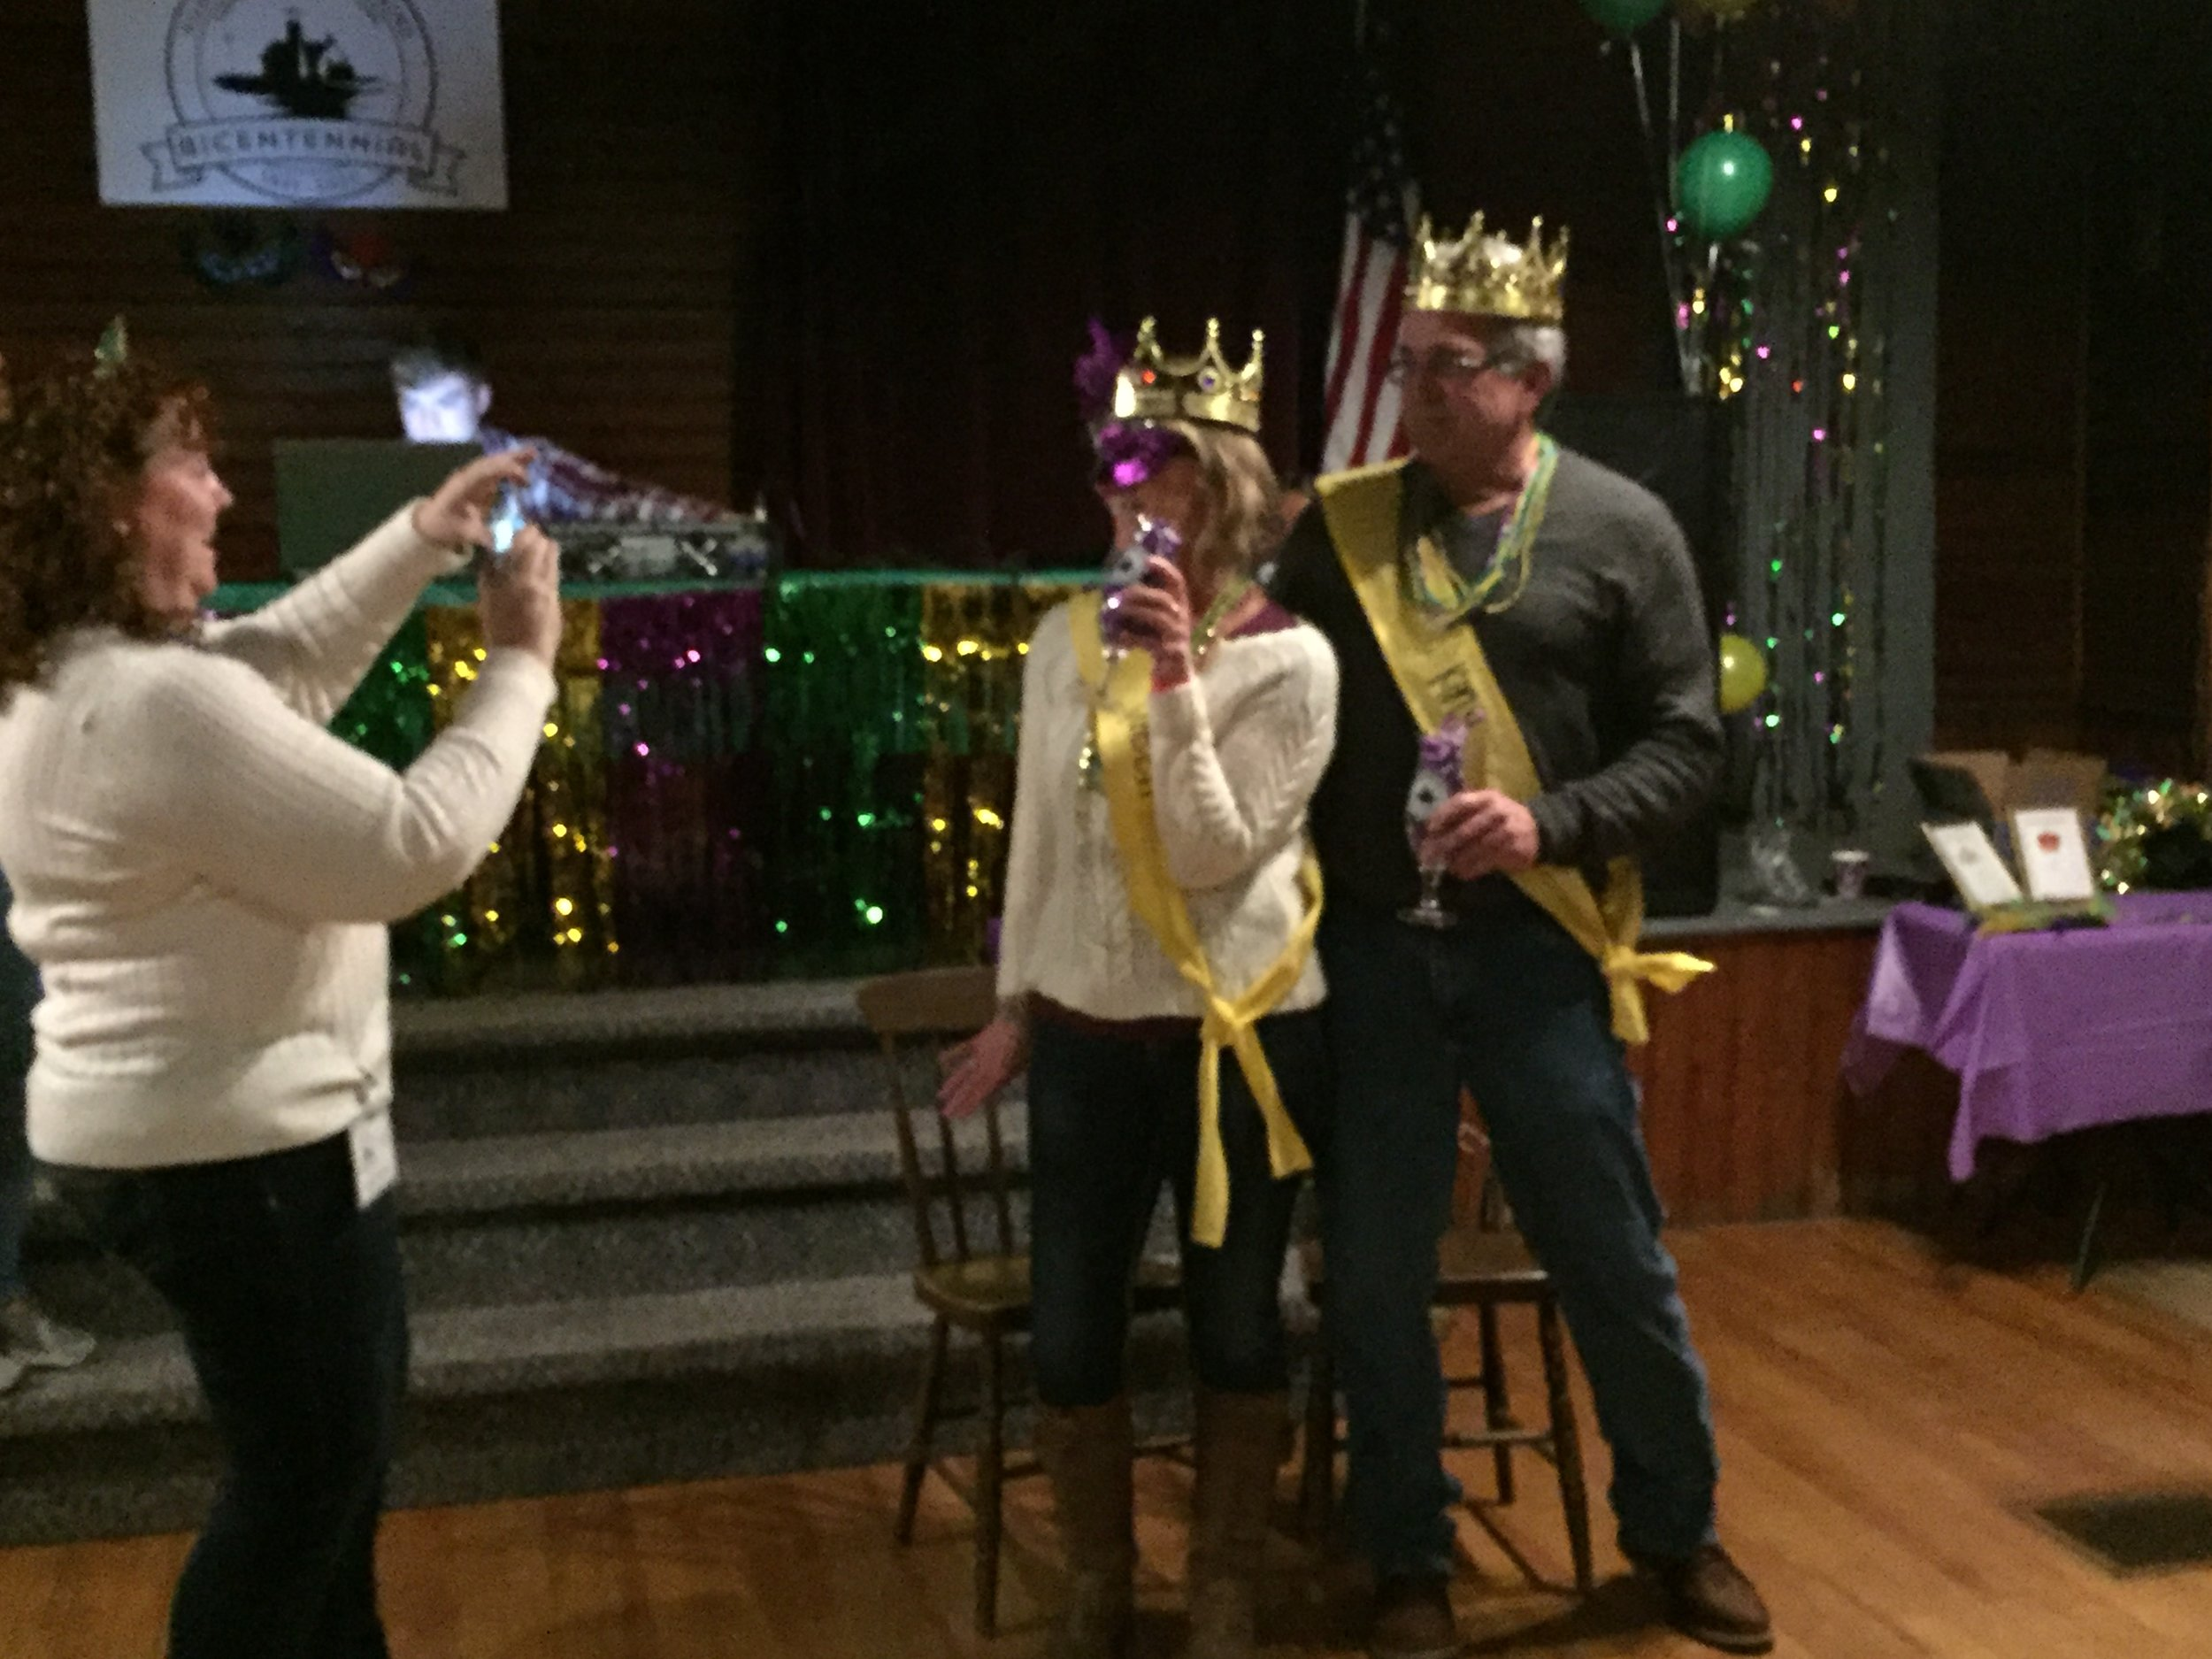 The Mardi Gras King and Queen are chosen.